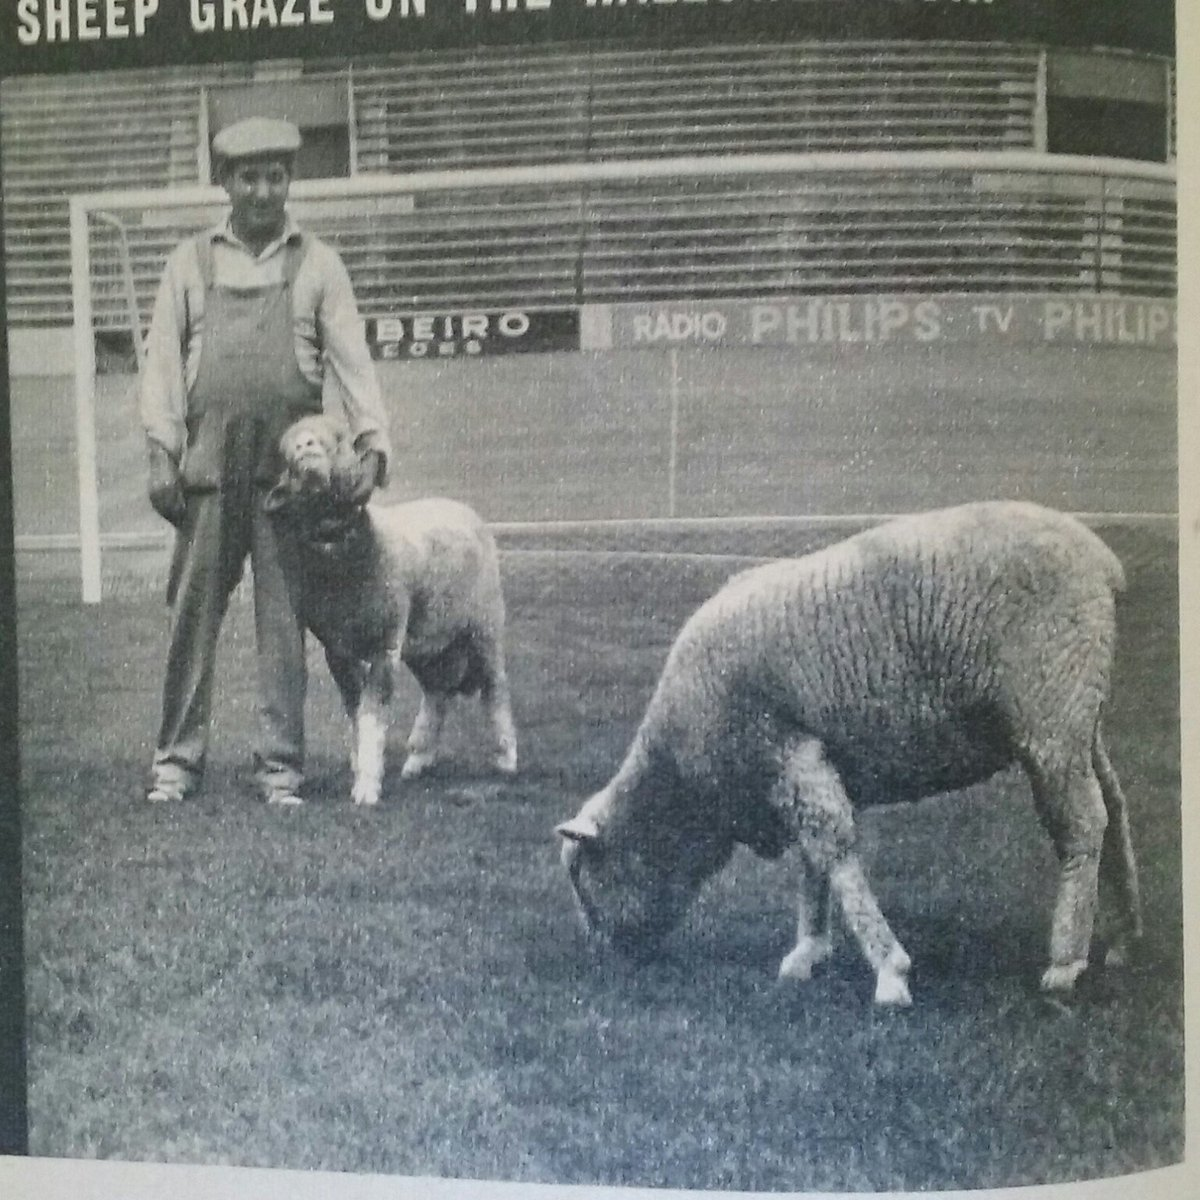 Sporting's 2,500 trophies and groundsman/shepherd in 1968. https://t.co/yBXWCSvdSL